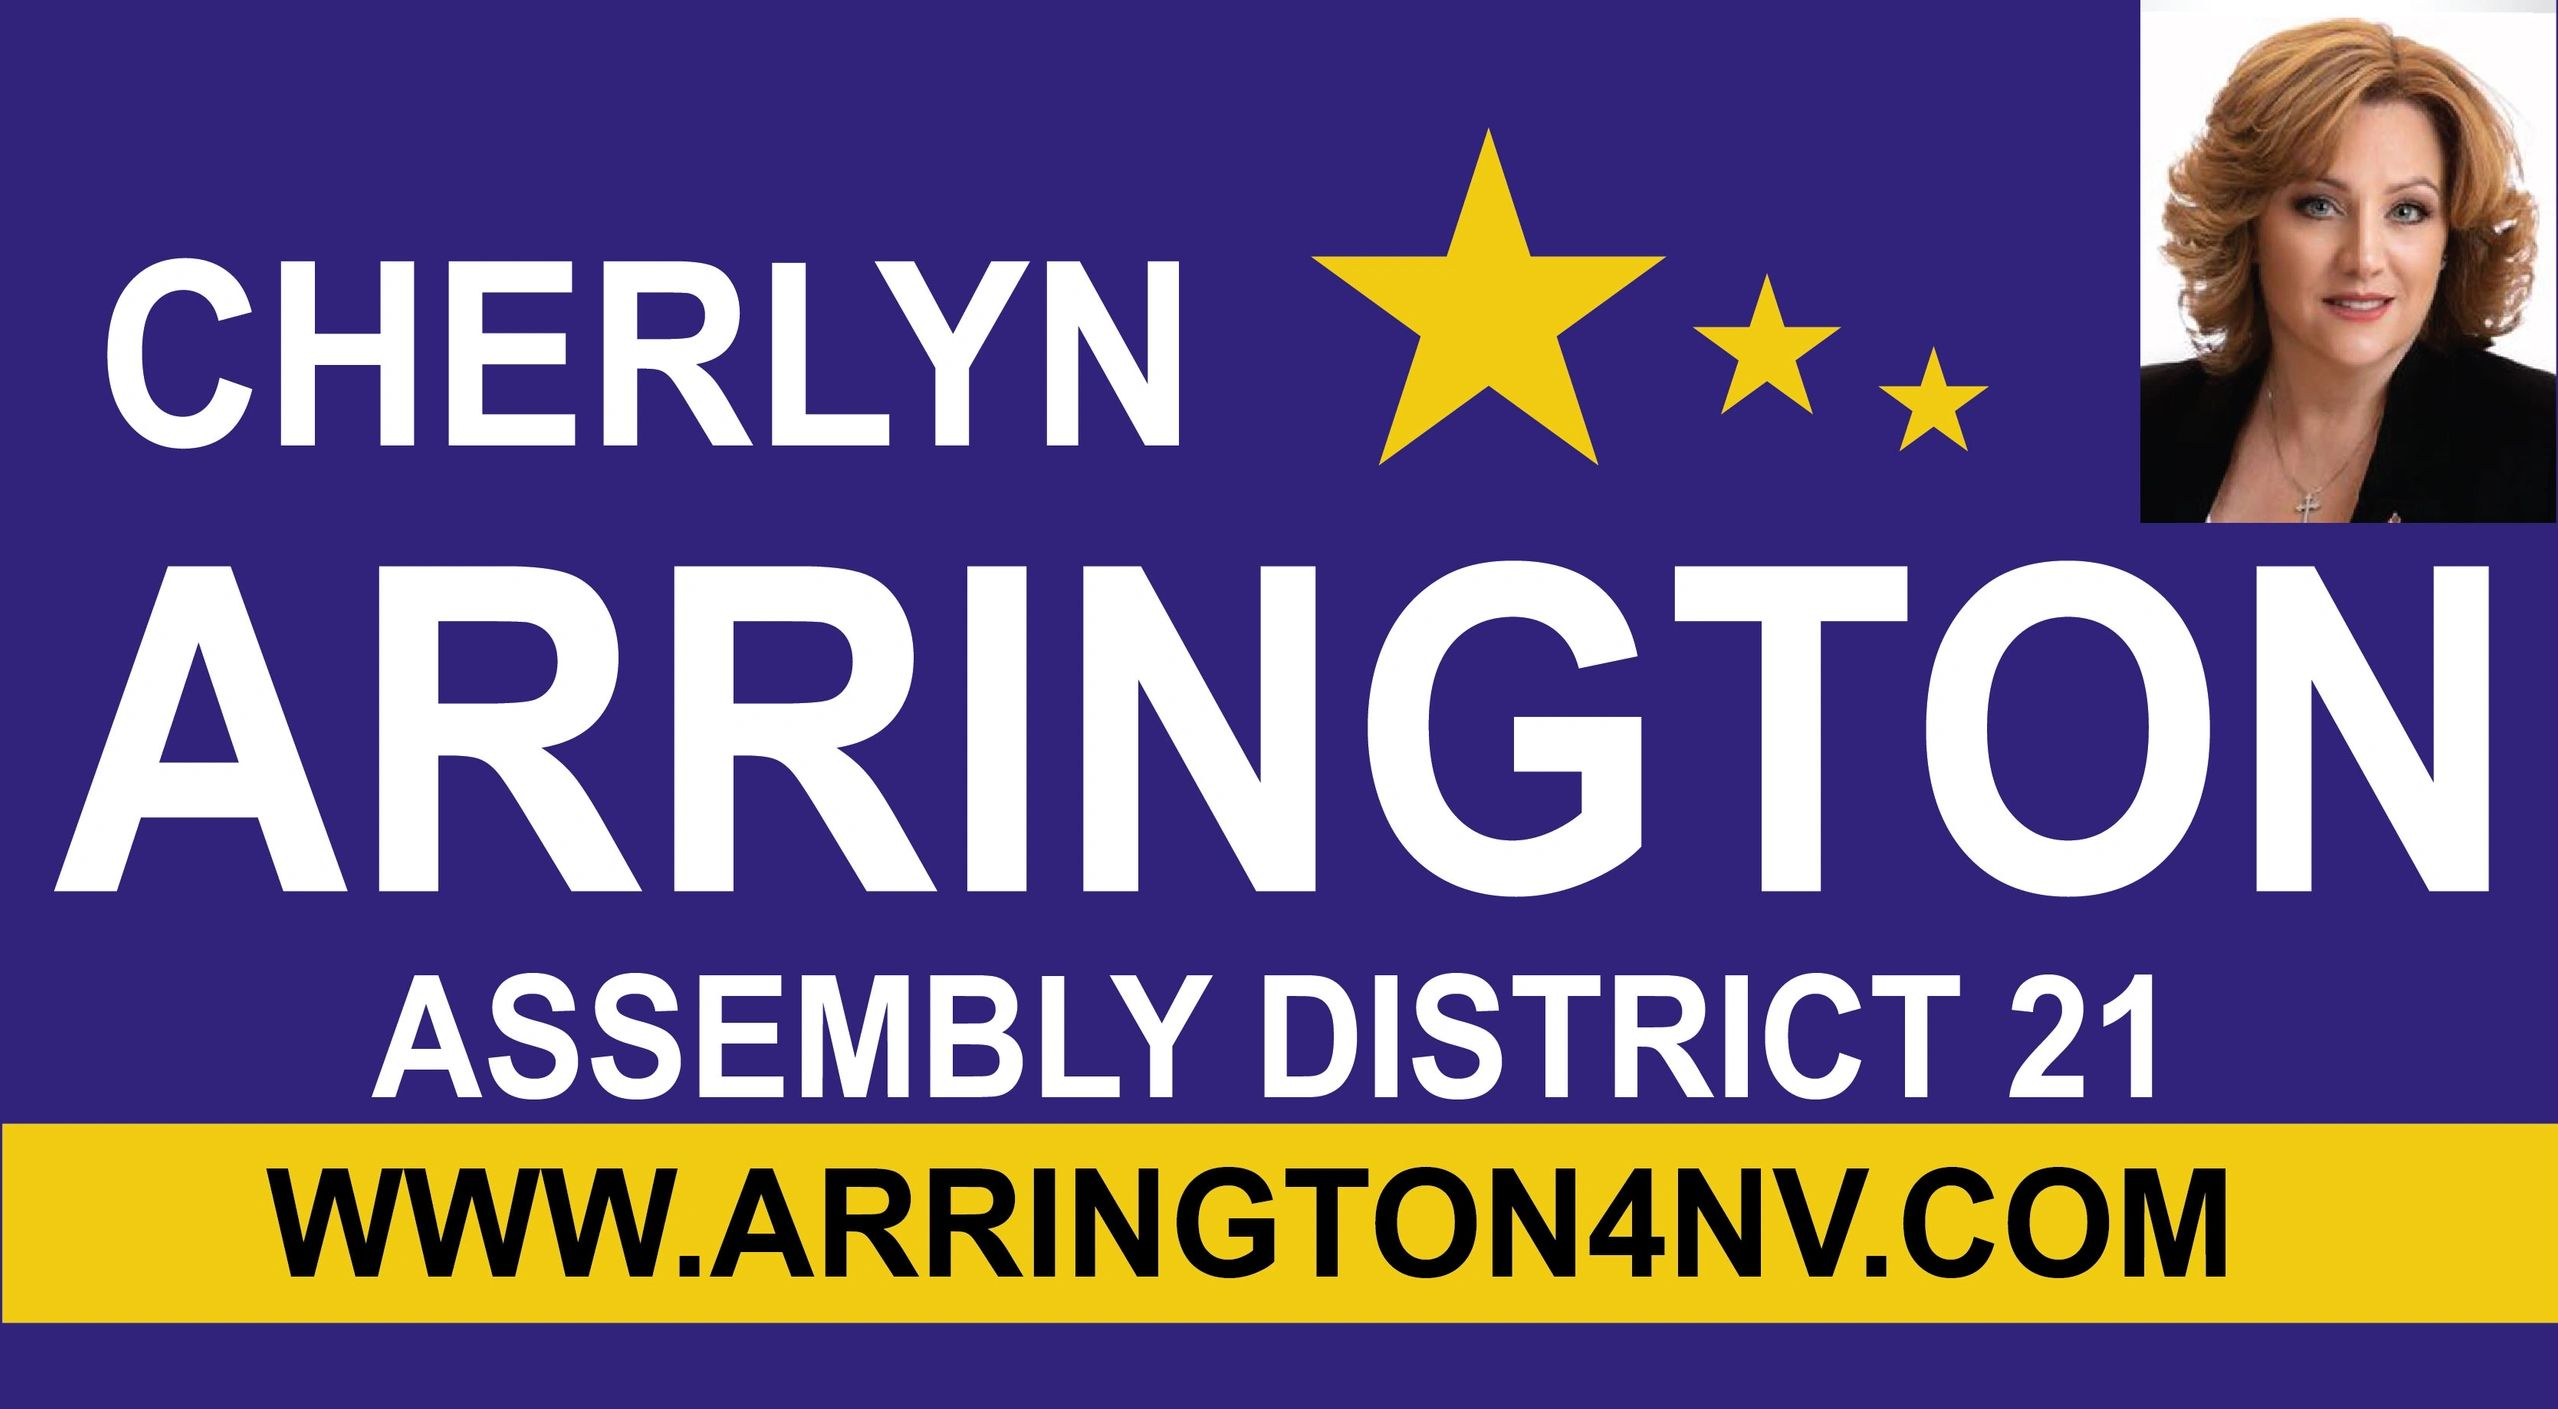 #Nevada District 21, #TRUMP2020 #Arrington,#Veterans, #Education, #Seniors,#Homeless youth,